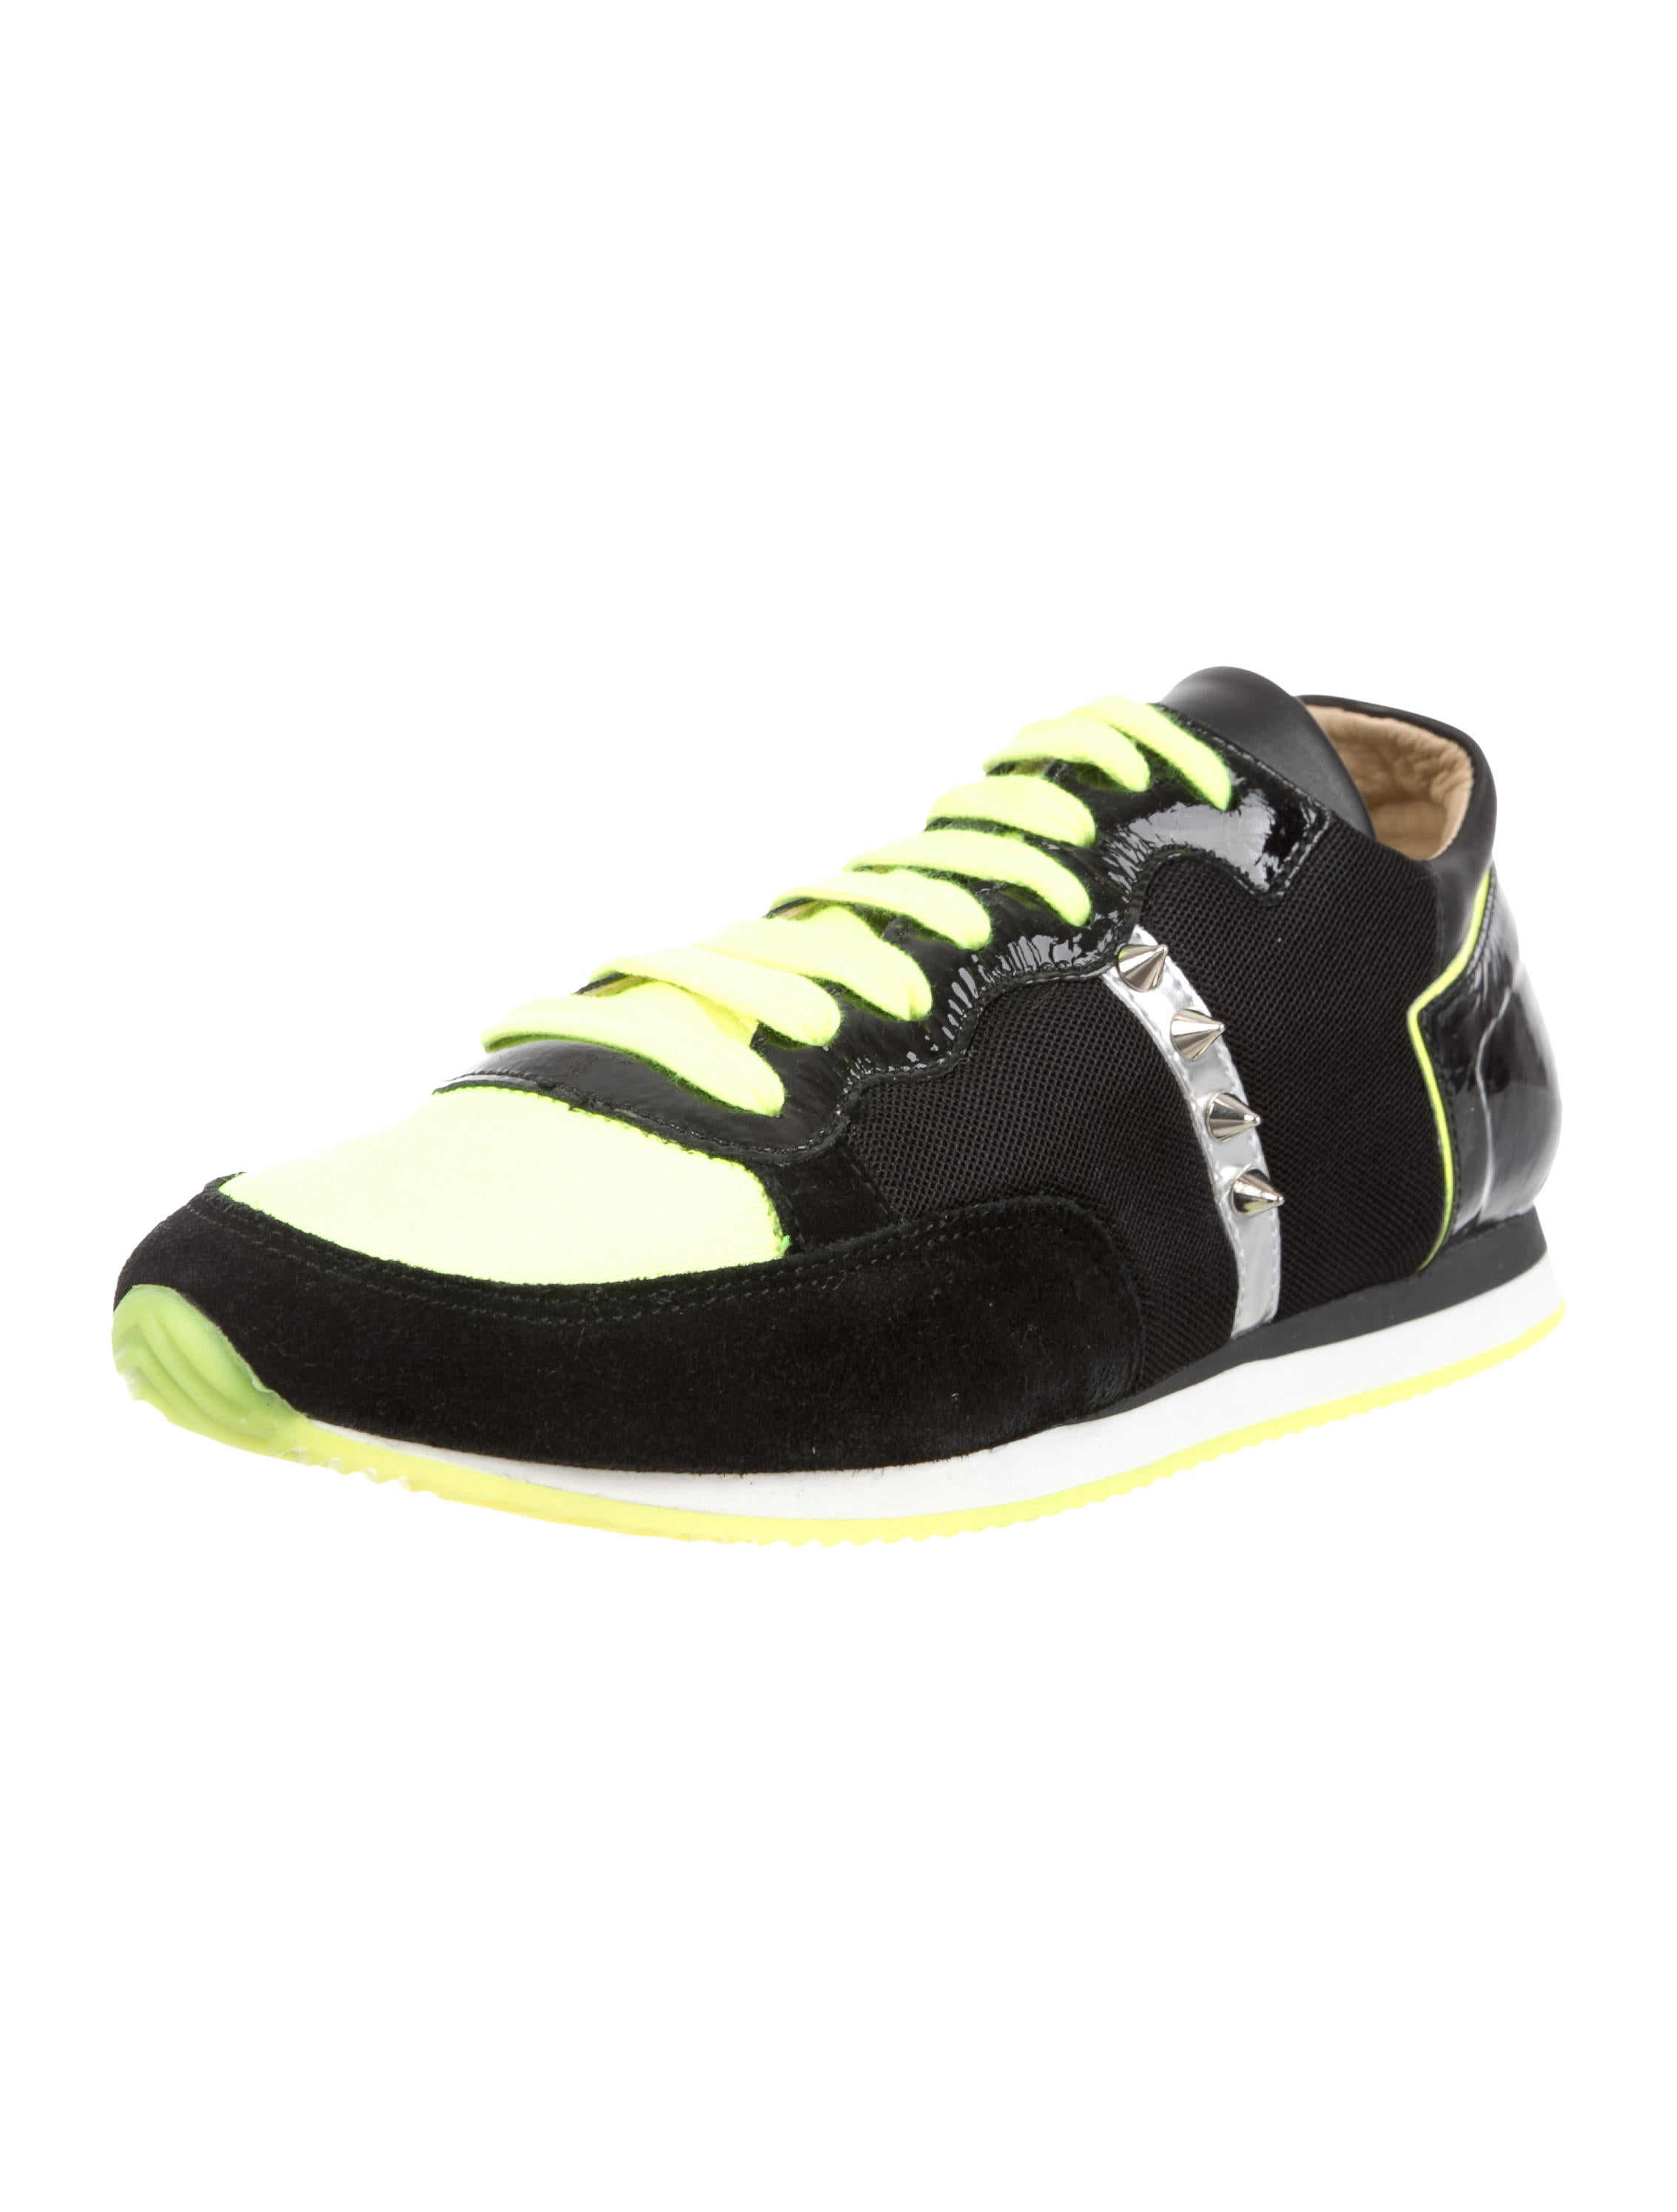 Ruthie Davis Round-Toe Low-Top Sneakers w/ Tags